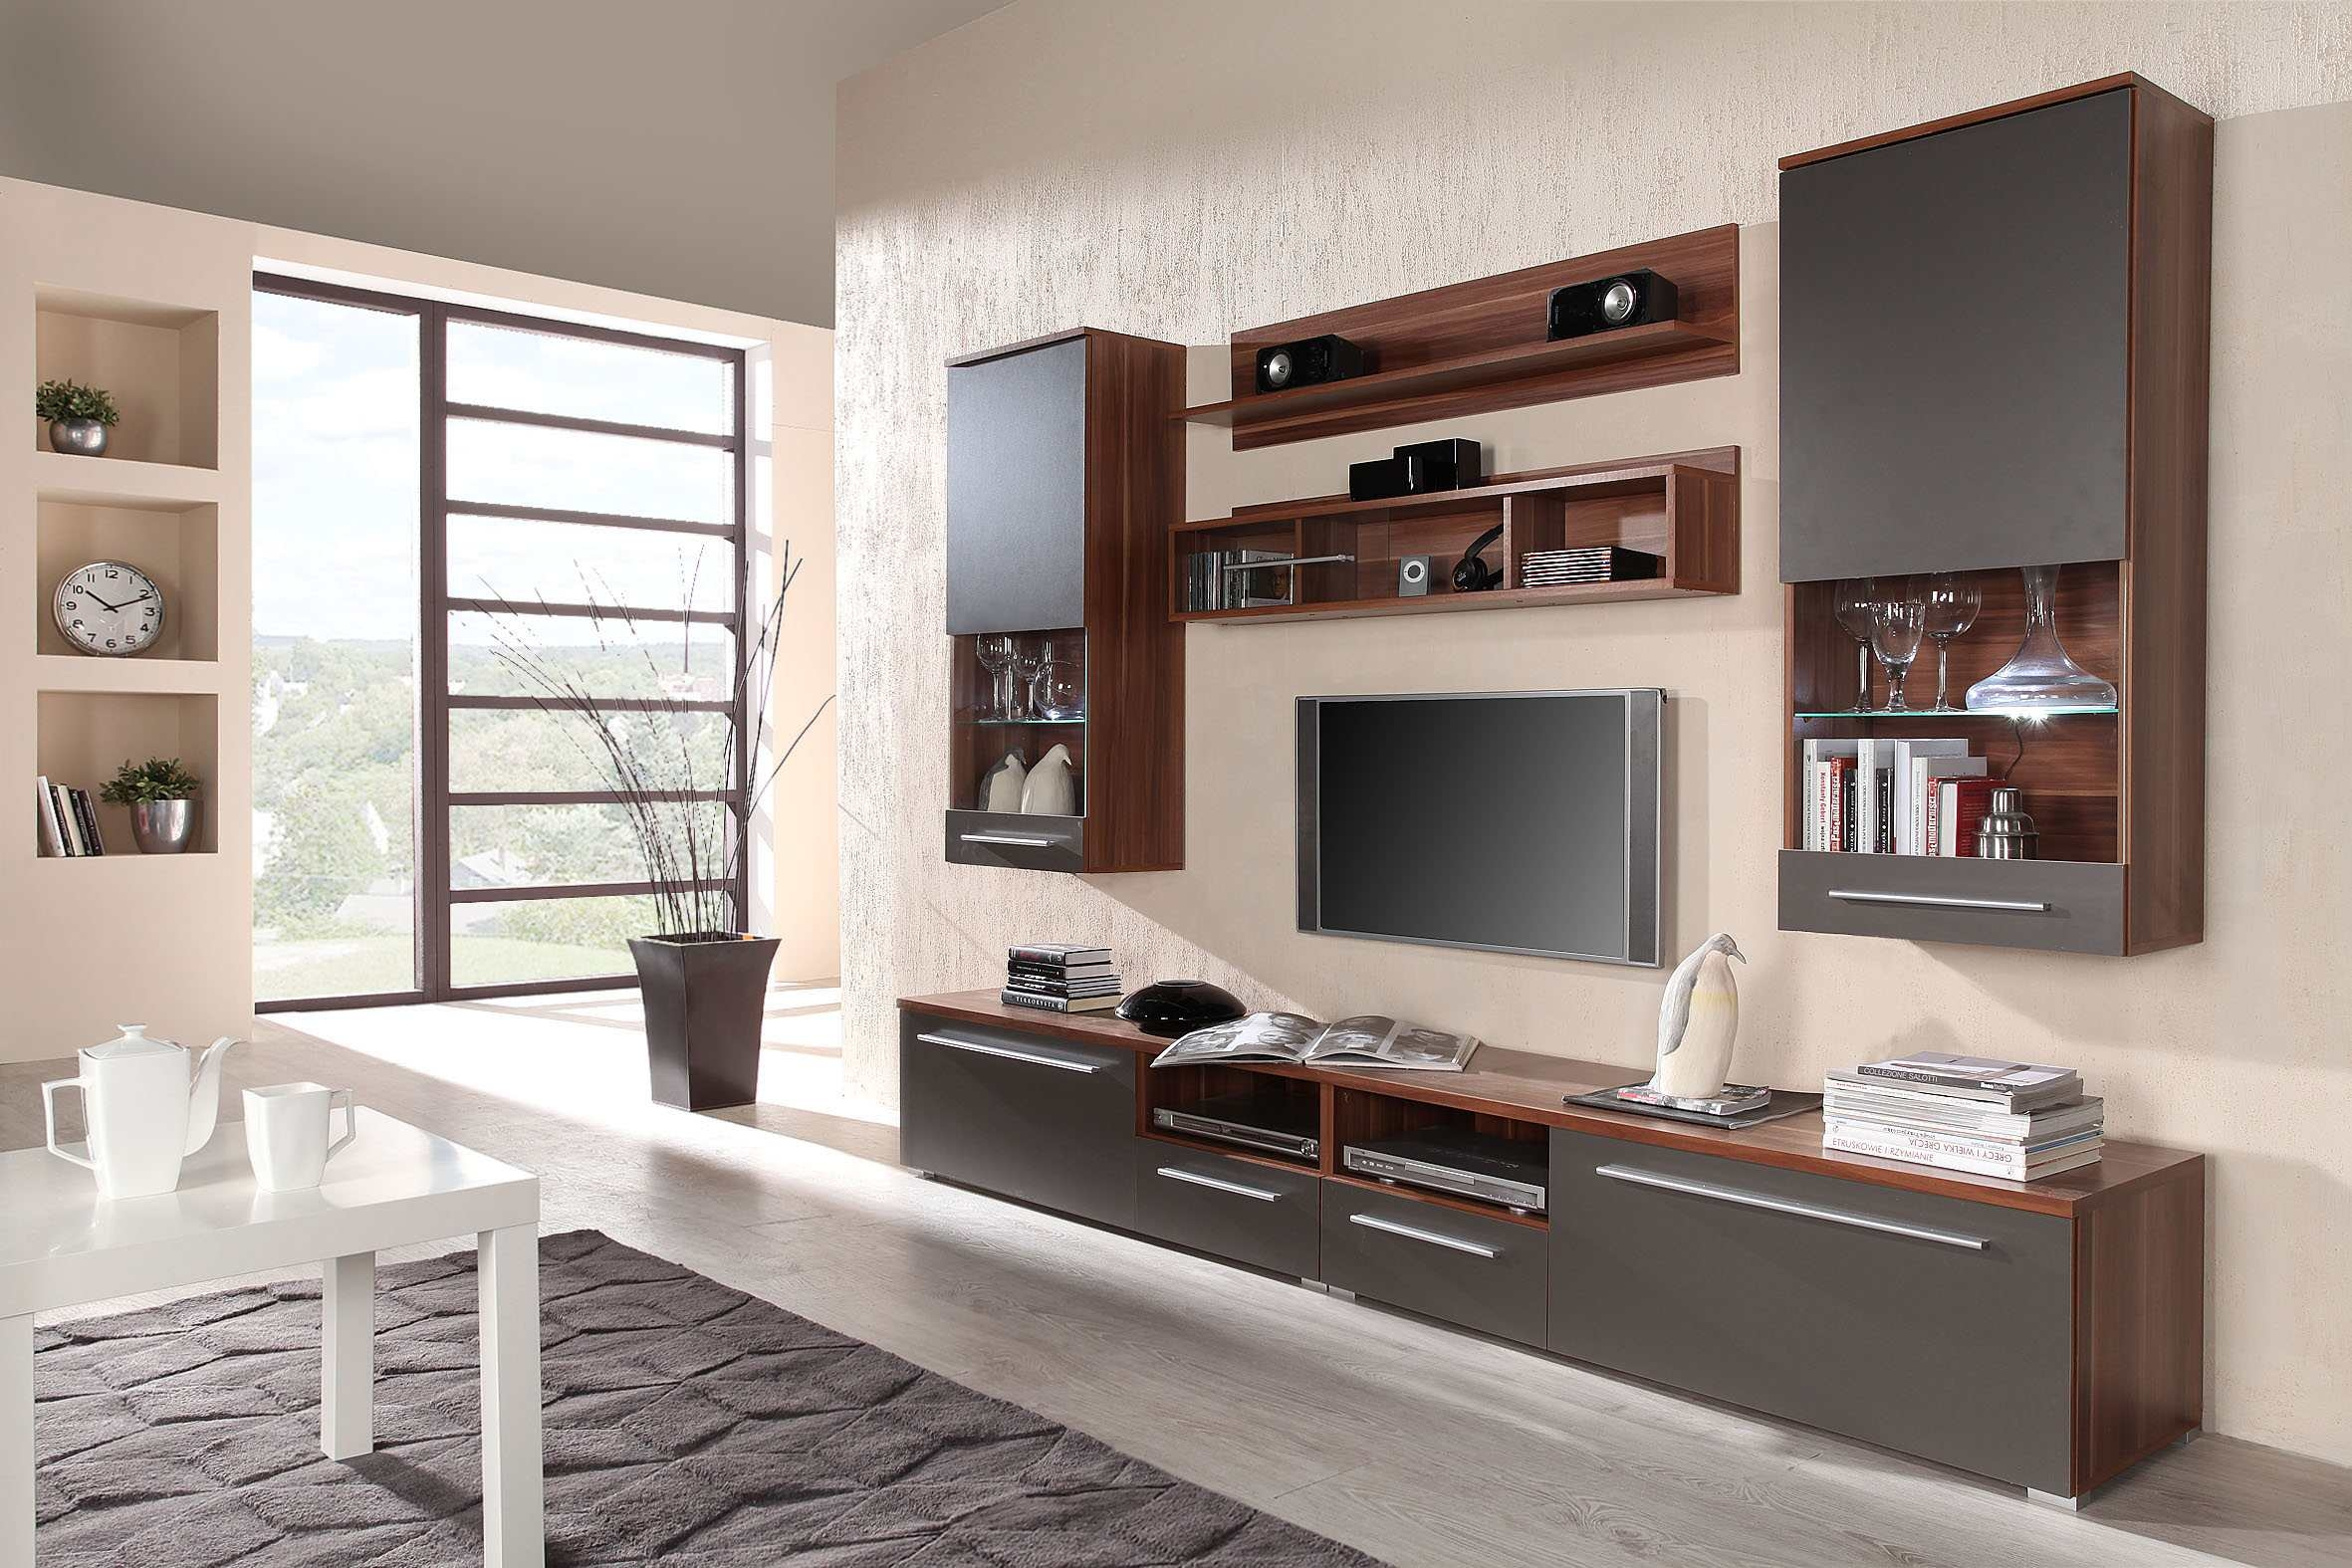 wall units furniture living room home built in bar and wall unit  -  modern tv unit design ideas for bedroom living room with pictures